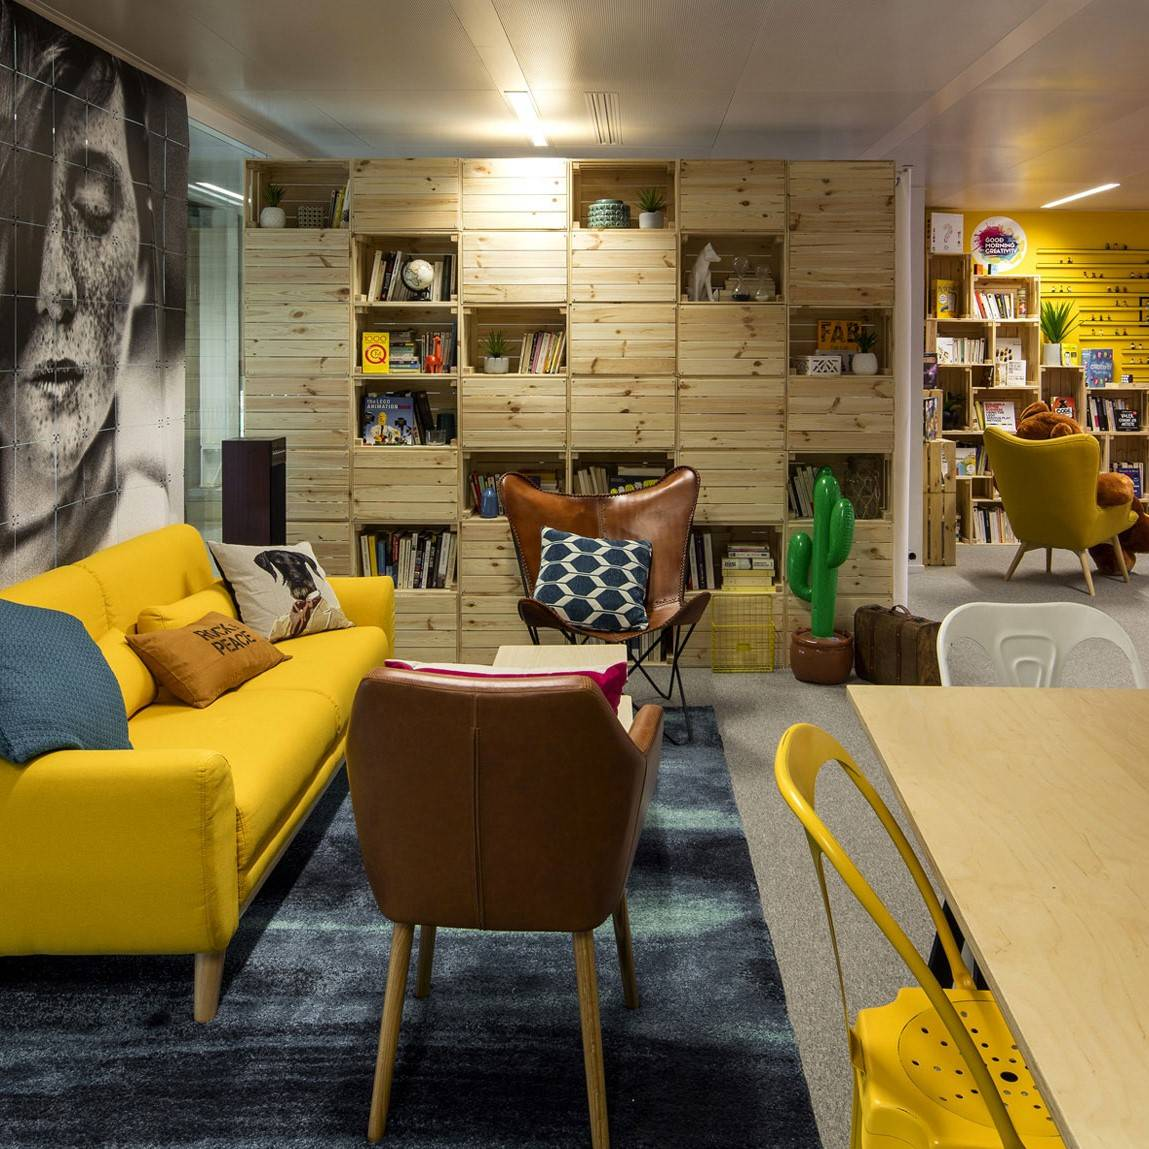 Shifts in occupier behaviour and attitudes to real estate pave the way for a workplace revolution